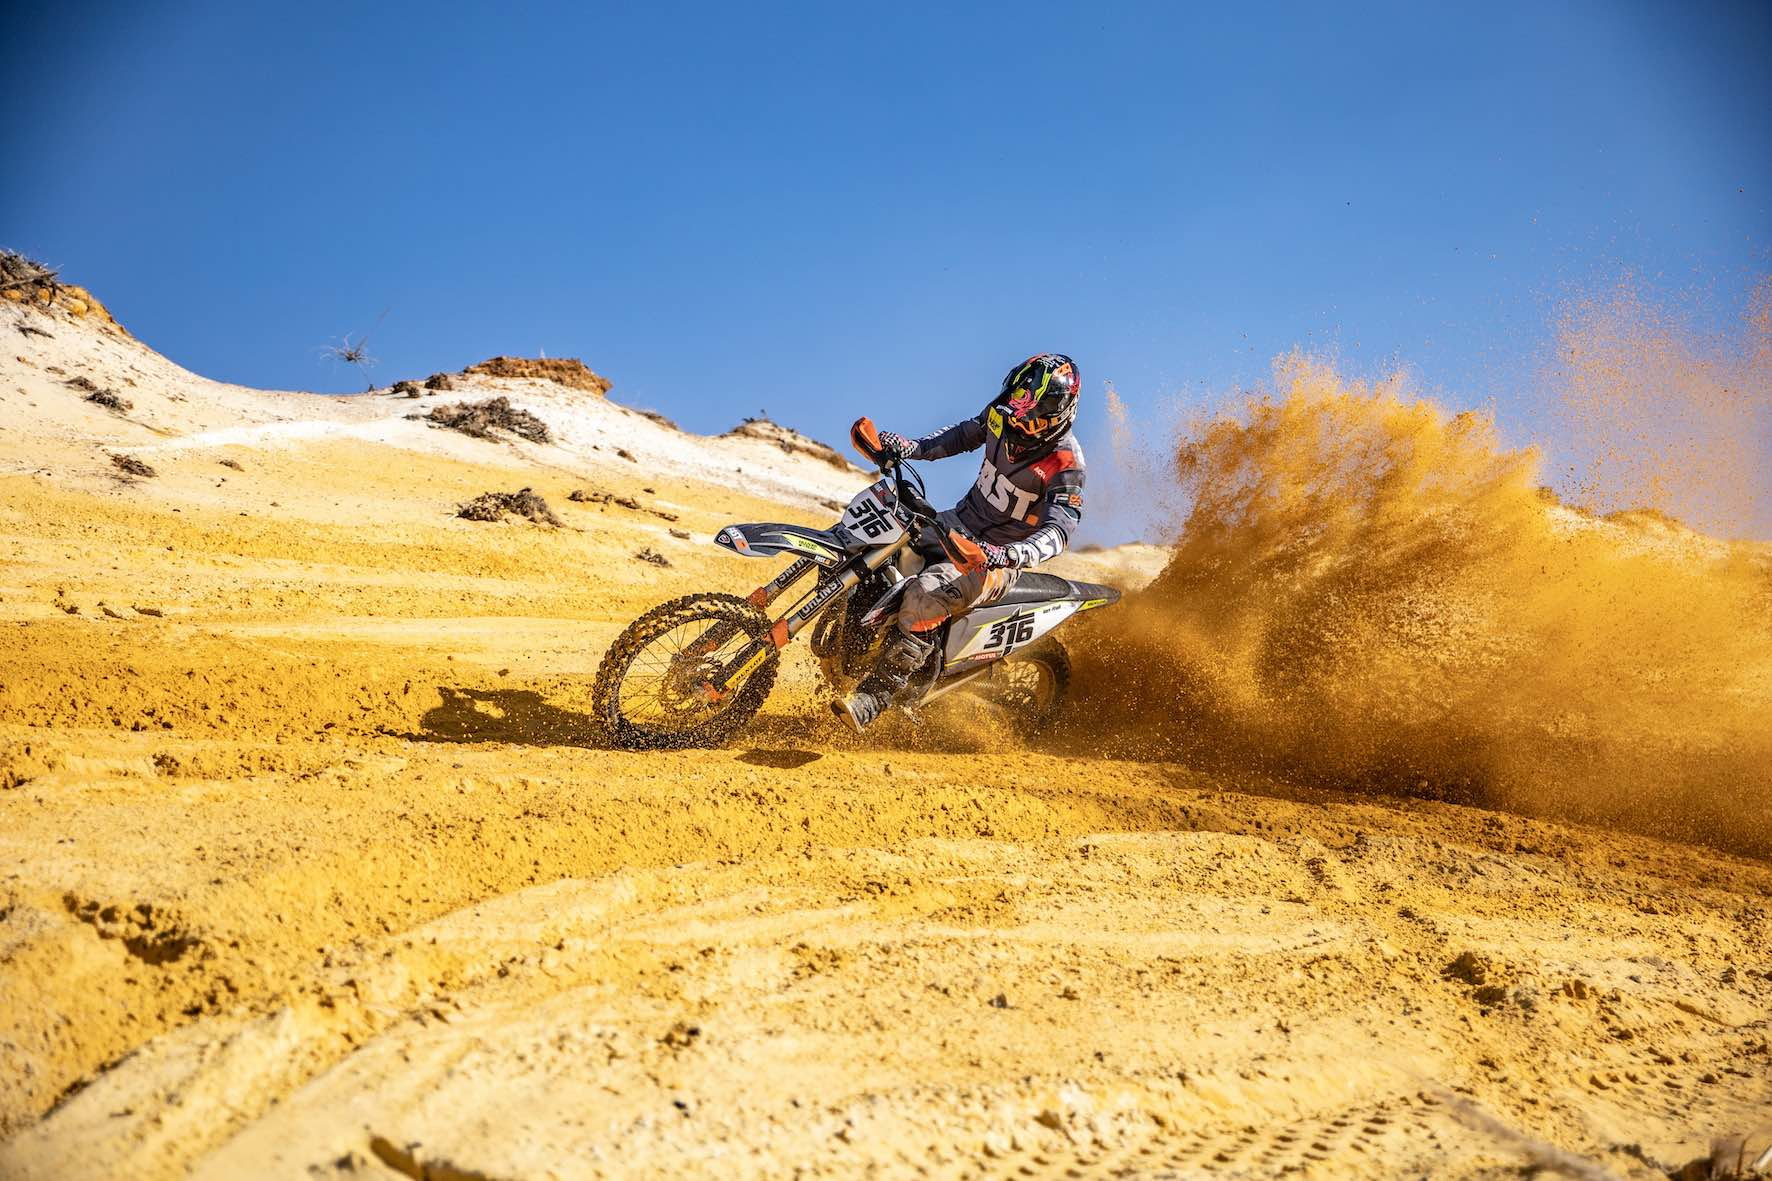 Interview with Ian Rall about off-road dirt bike racing